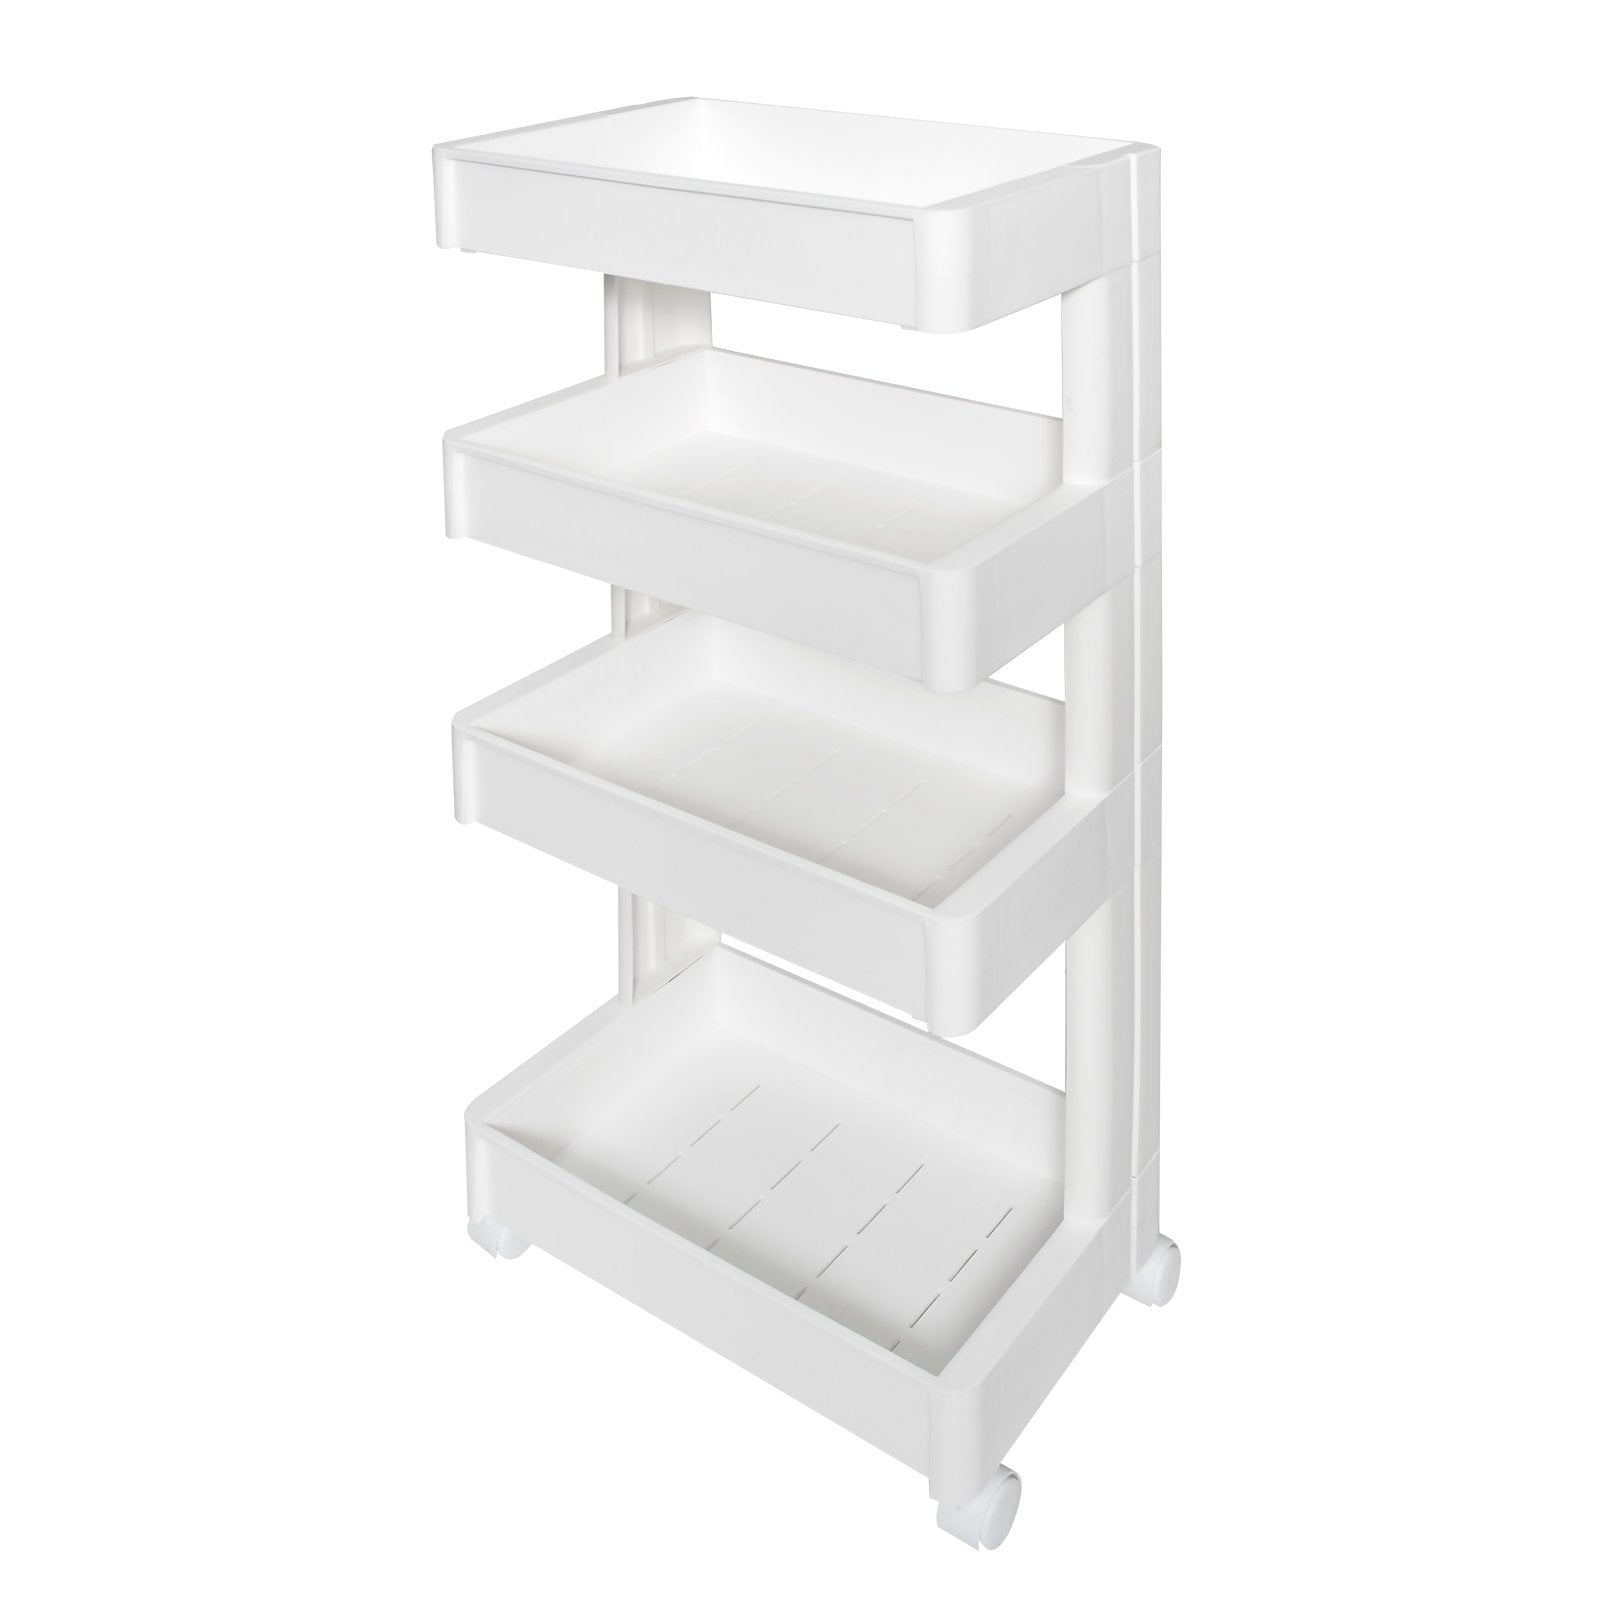 HOUZE - 4 Tier Storage Wagon with Wheels (Narrow) - HOUZE - The Homeware Superstore